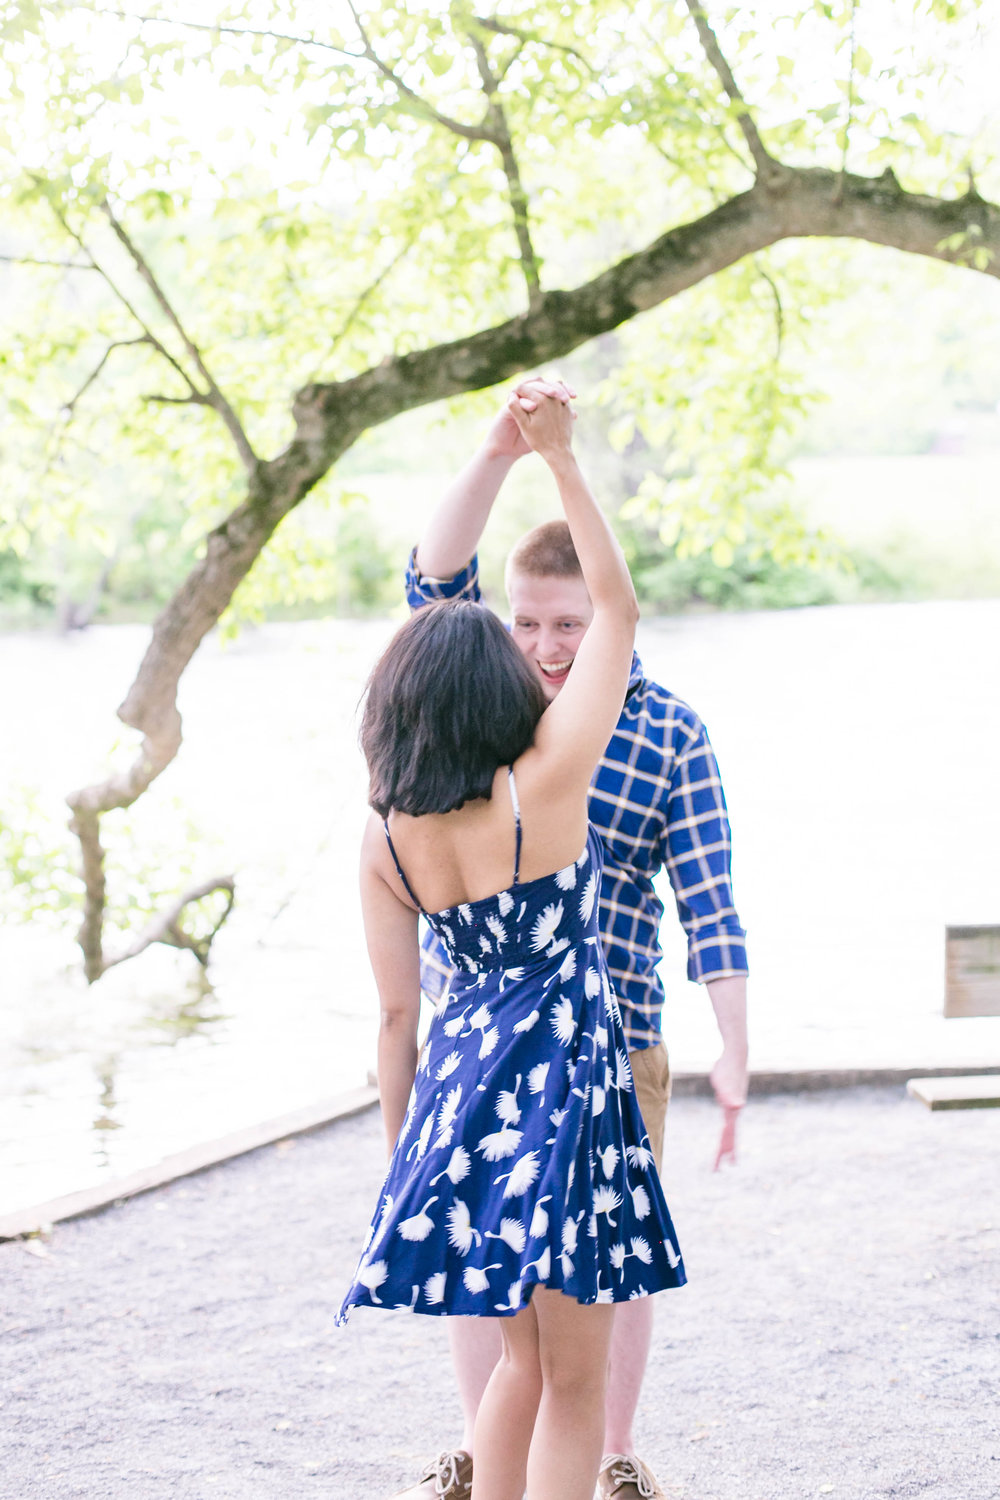 Johnson City wedding photography, Elizabethton engagement session, Tri Cities TN wedding photographer, East Tennessee wedding photography, Sycamore Shoals State Park engagement, romantic couple